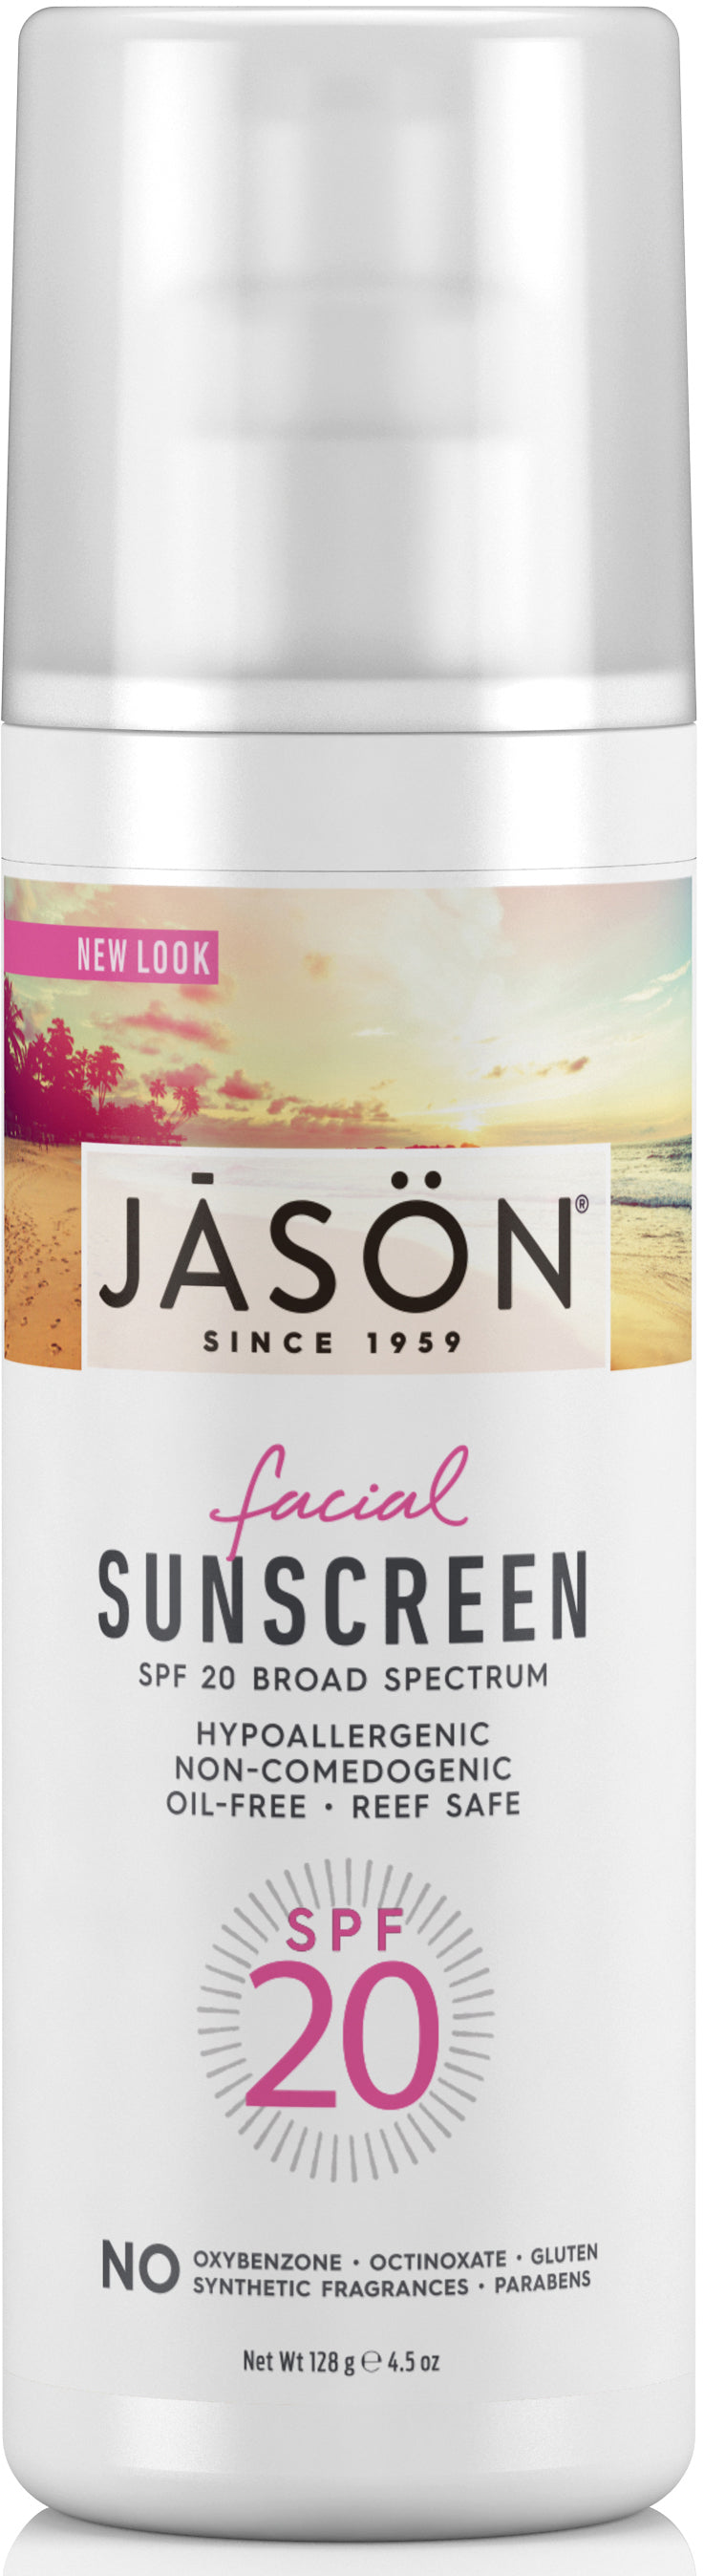 JASON Facial Sunscreen SPF 20